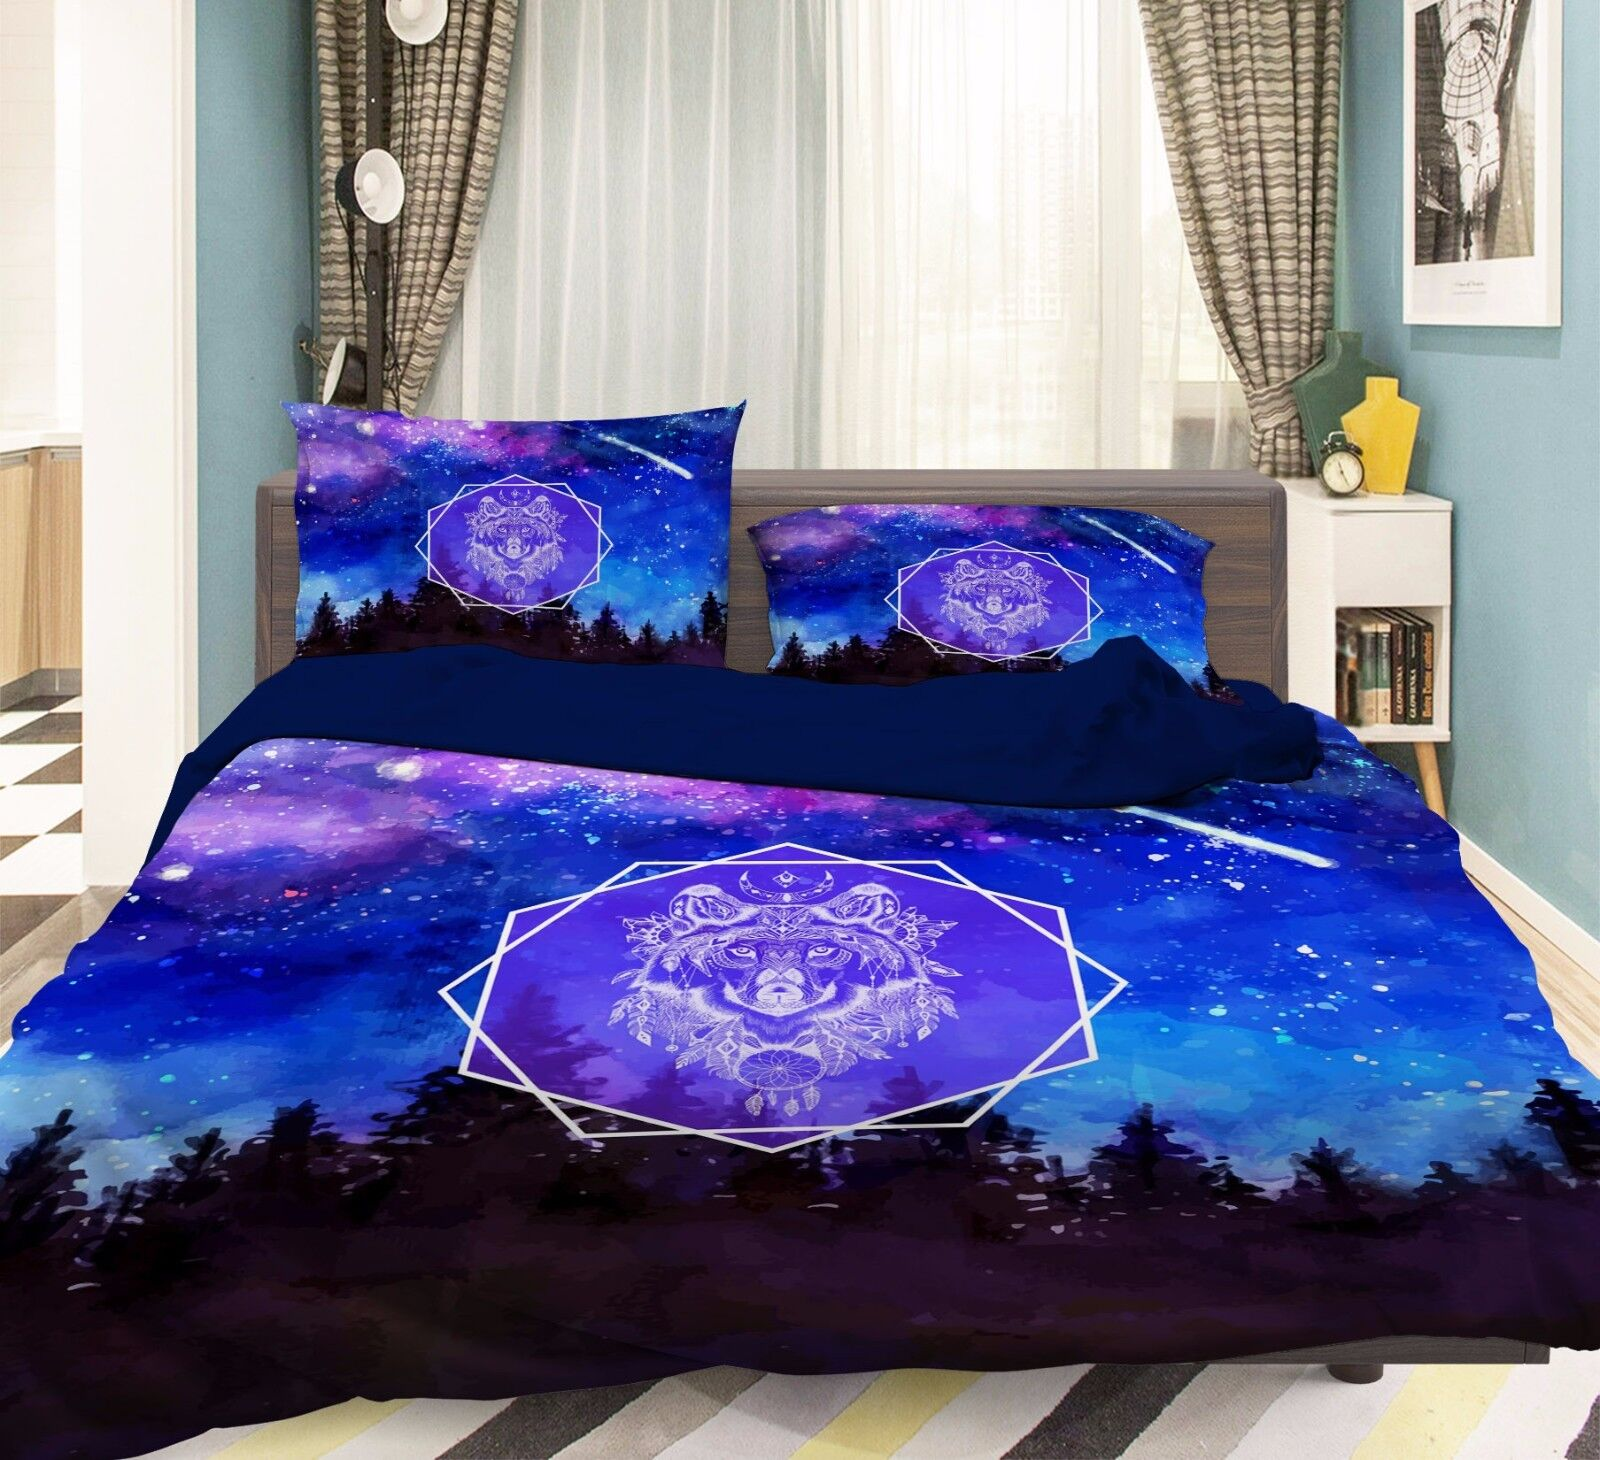 3D Lion King 806 Bed Pillowcases Quilt Duvet Cover Set Single Queen UK Summer